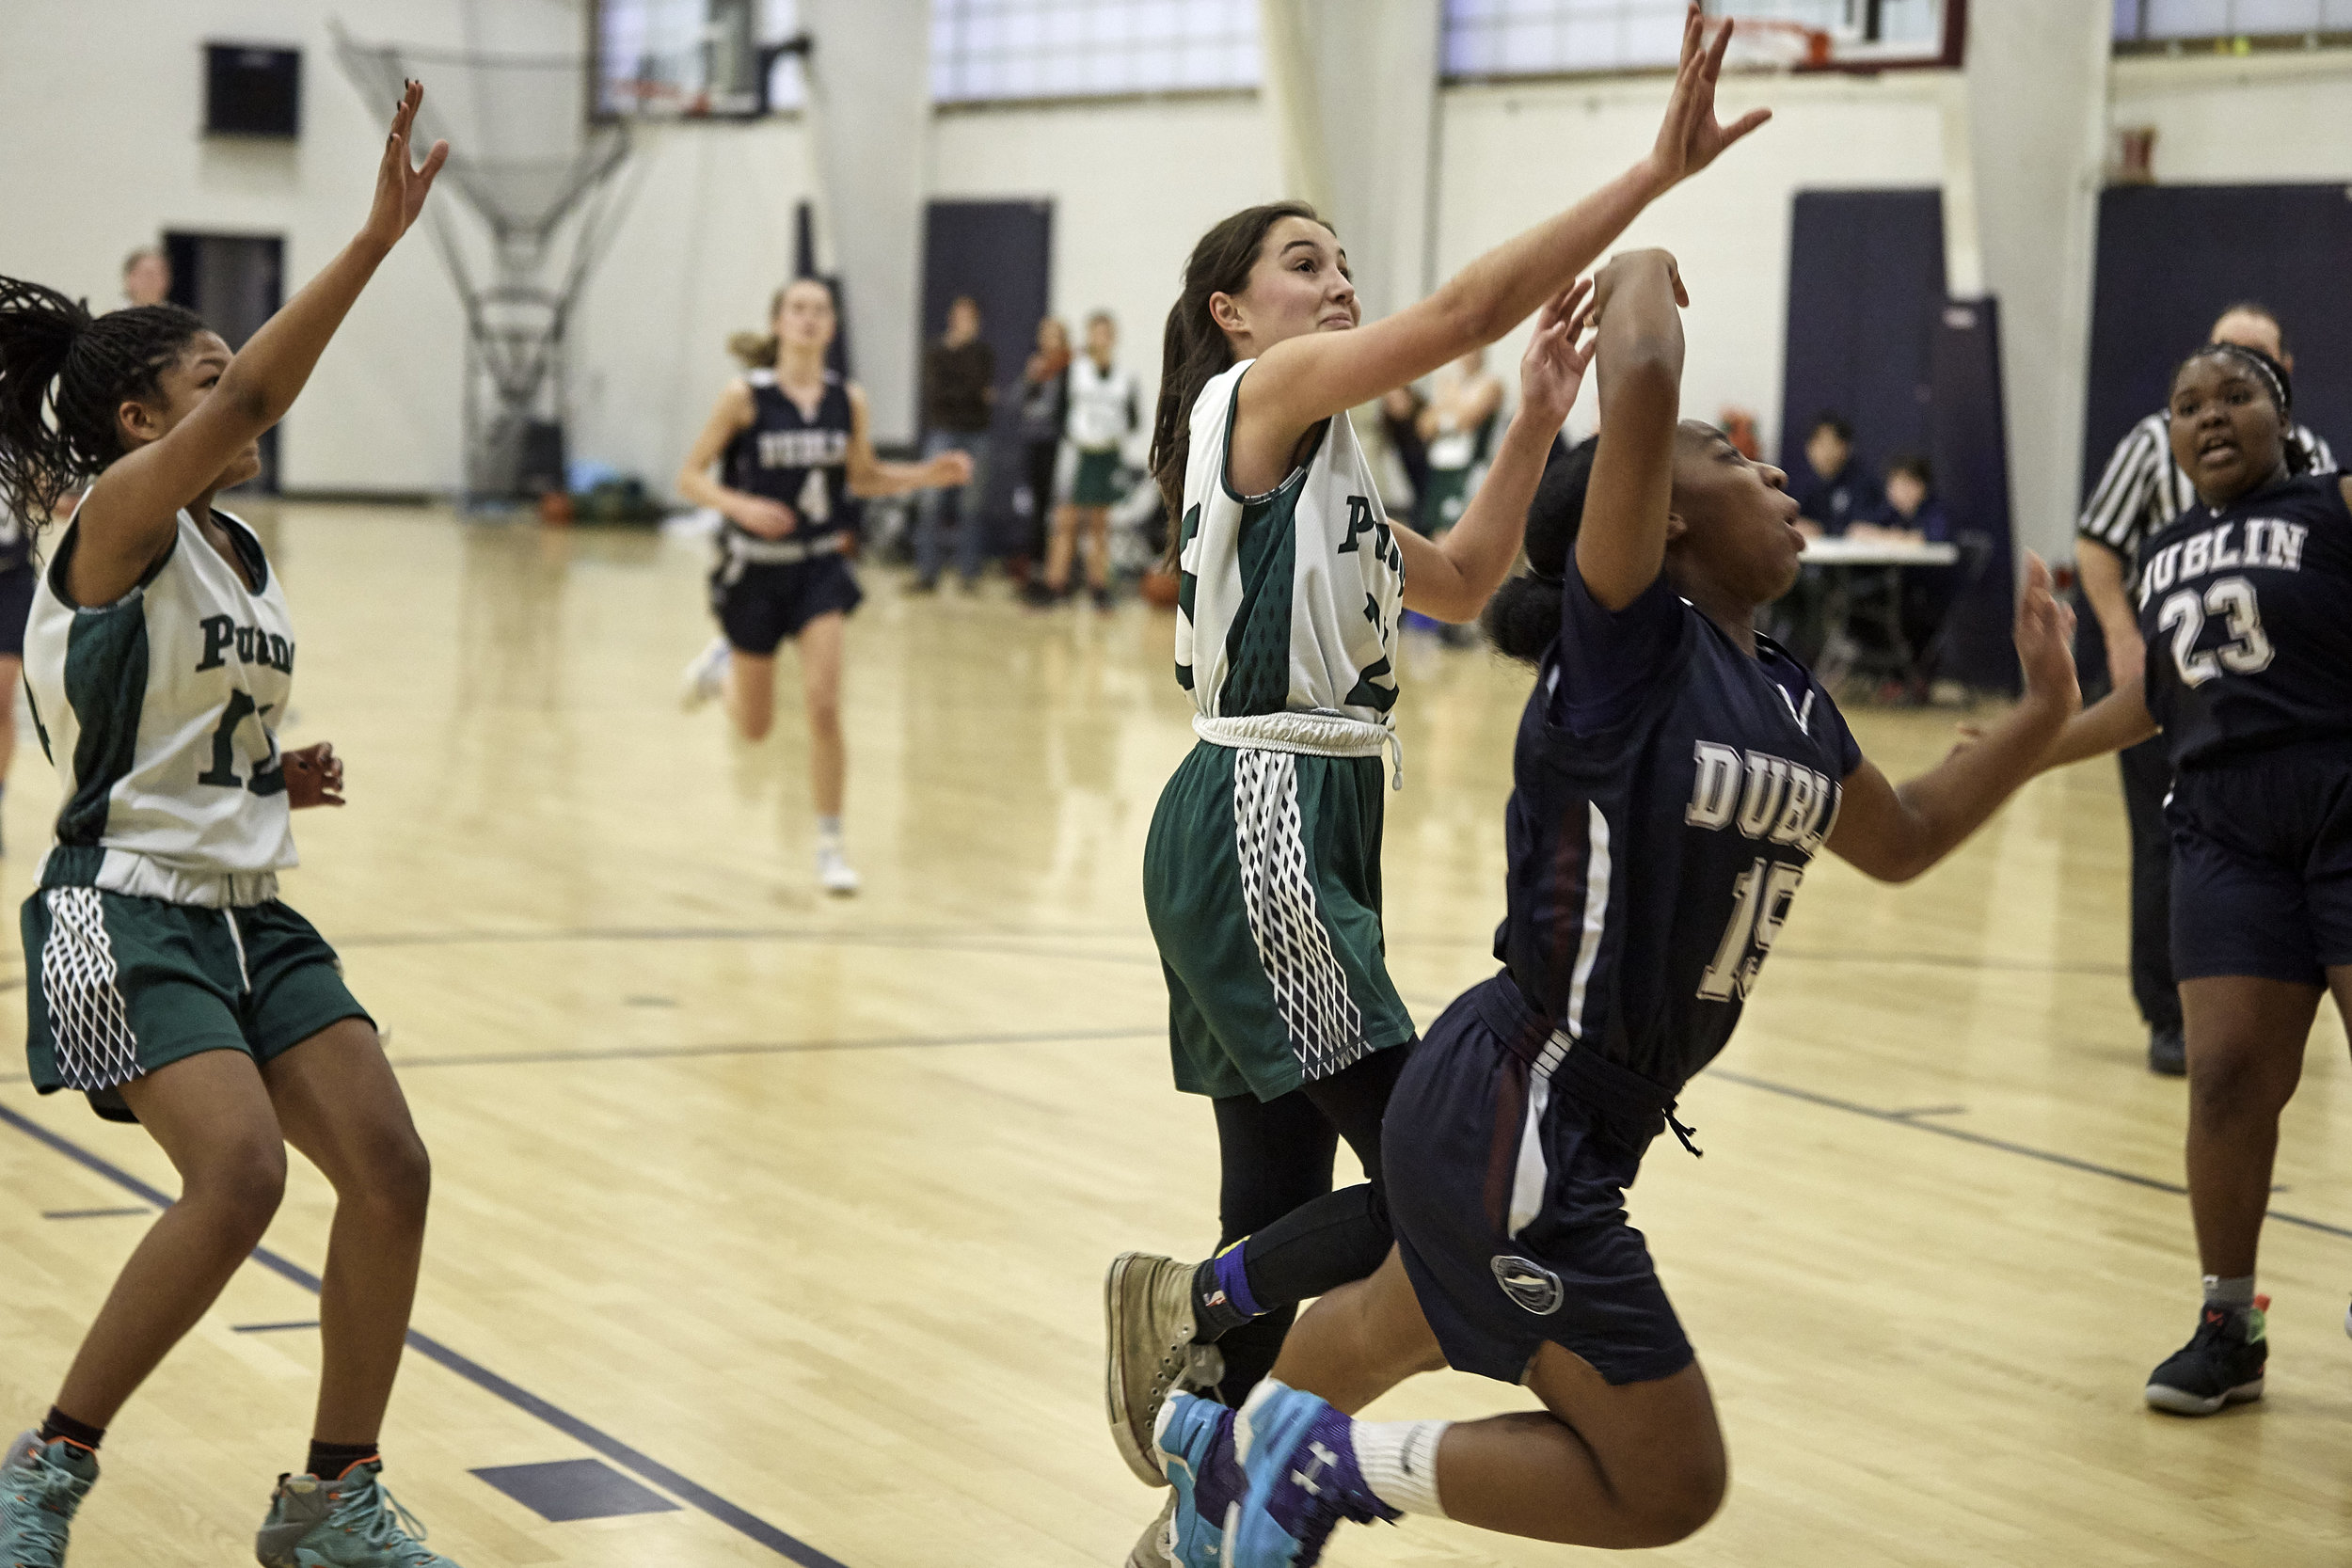 Basketball vs Putney School, February 9, 2019 - 167561.jpg